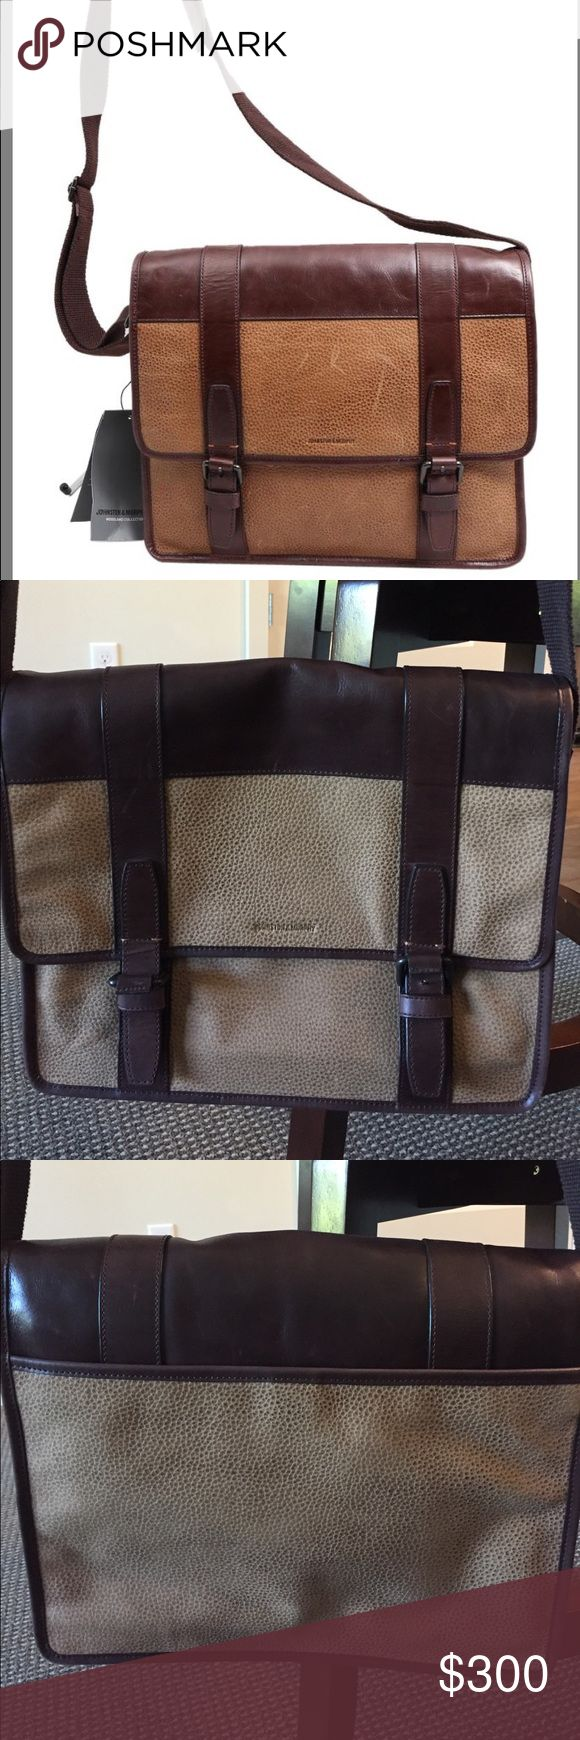 NWOT Johnston & Murphy messenger bag Johnston & Murphy messenger bag - NEVER used! NWOT Johnston & Murphy Bags Messenger Bags